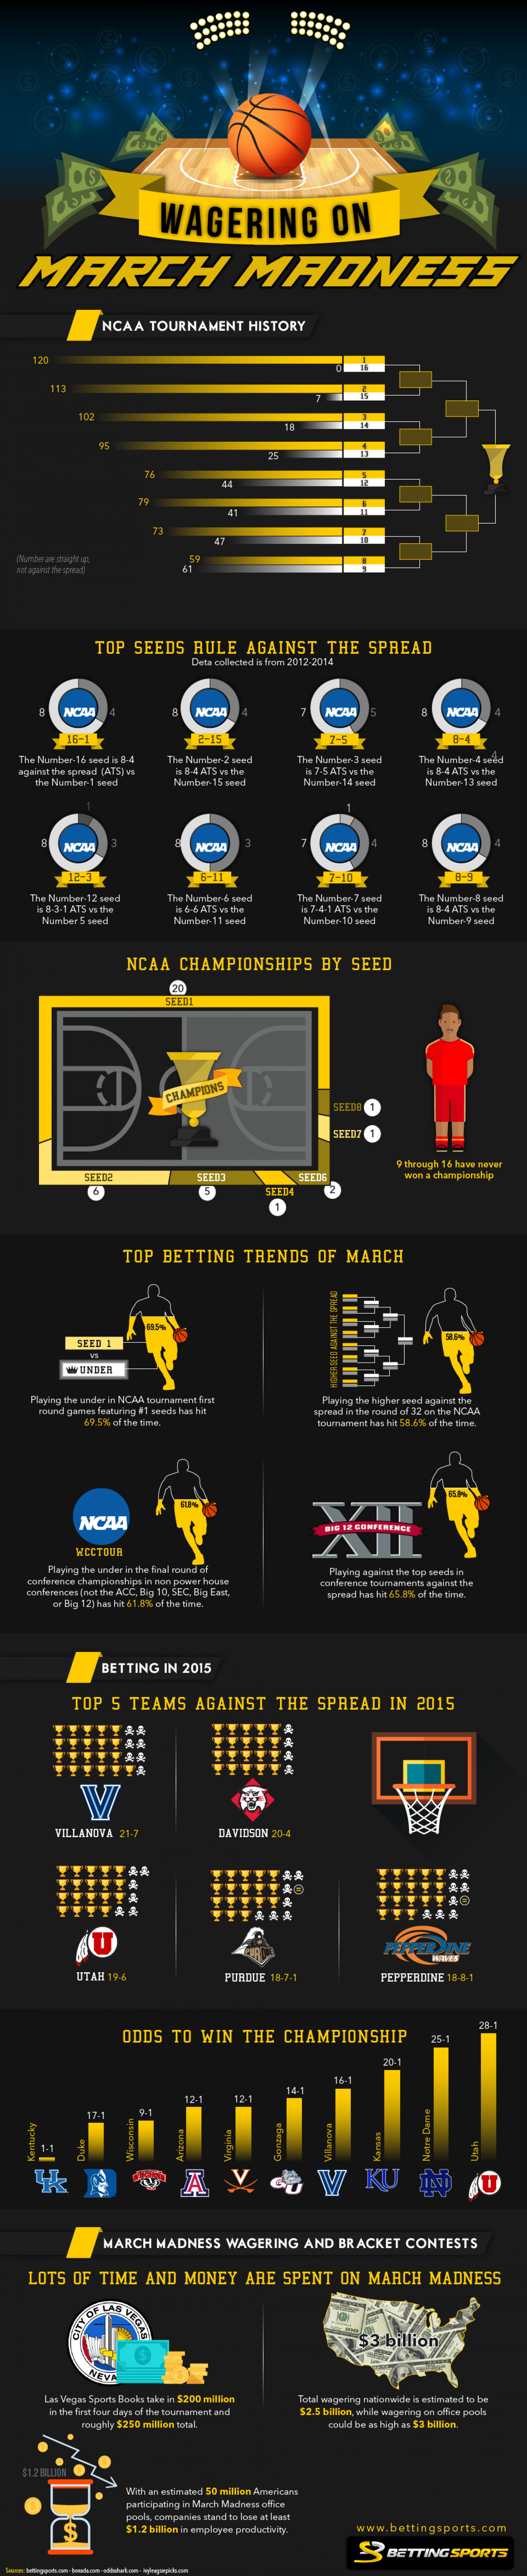 Wagering on March Madness Infographic